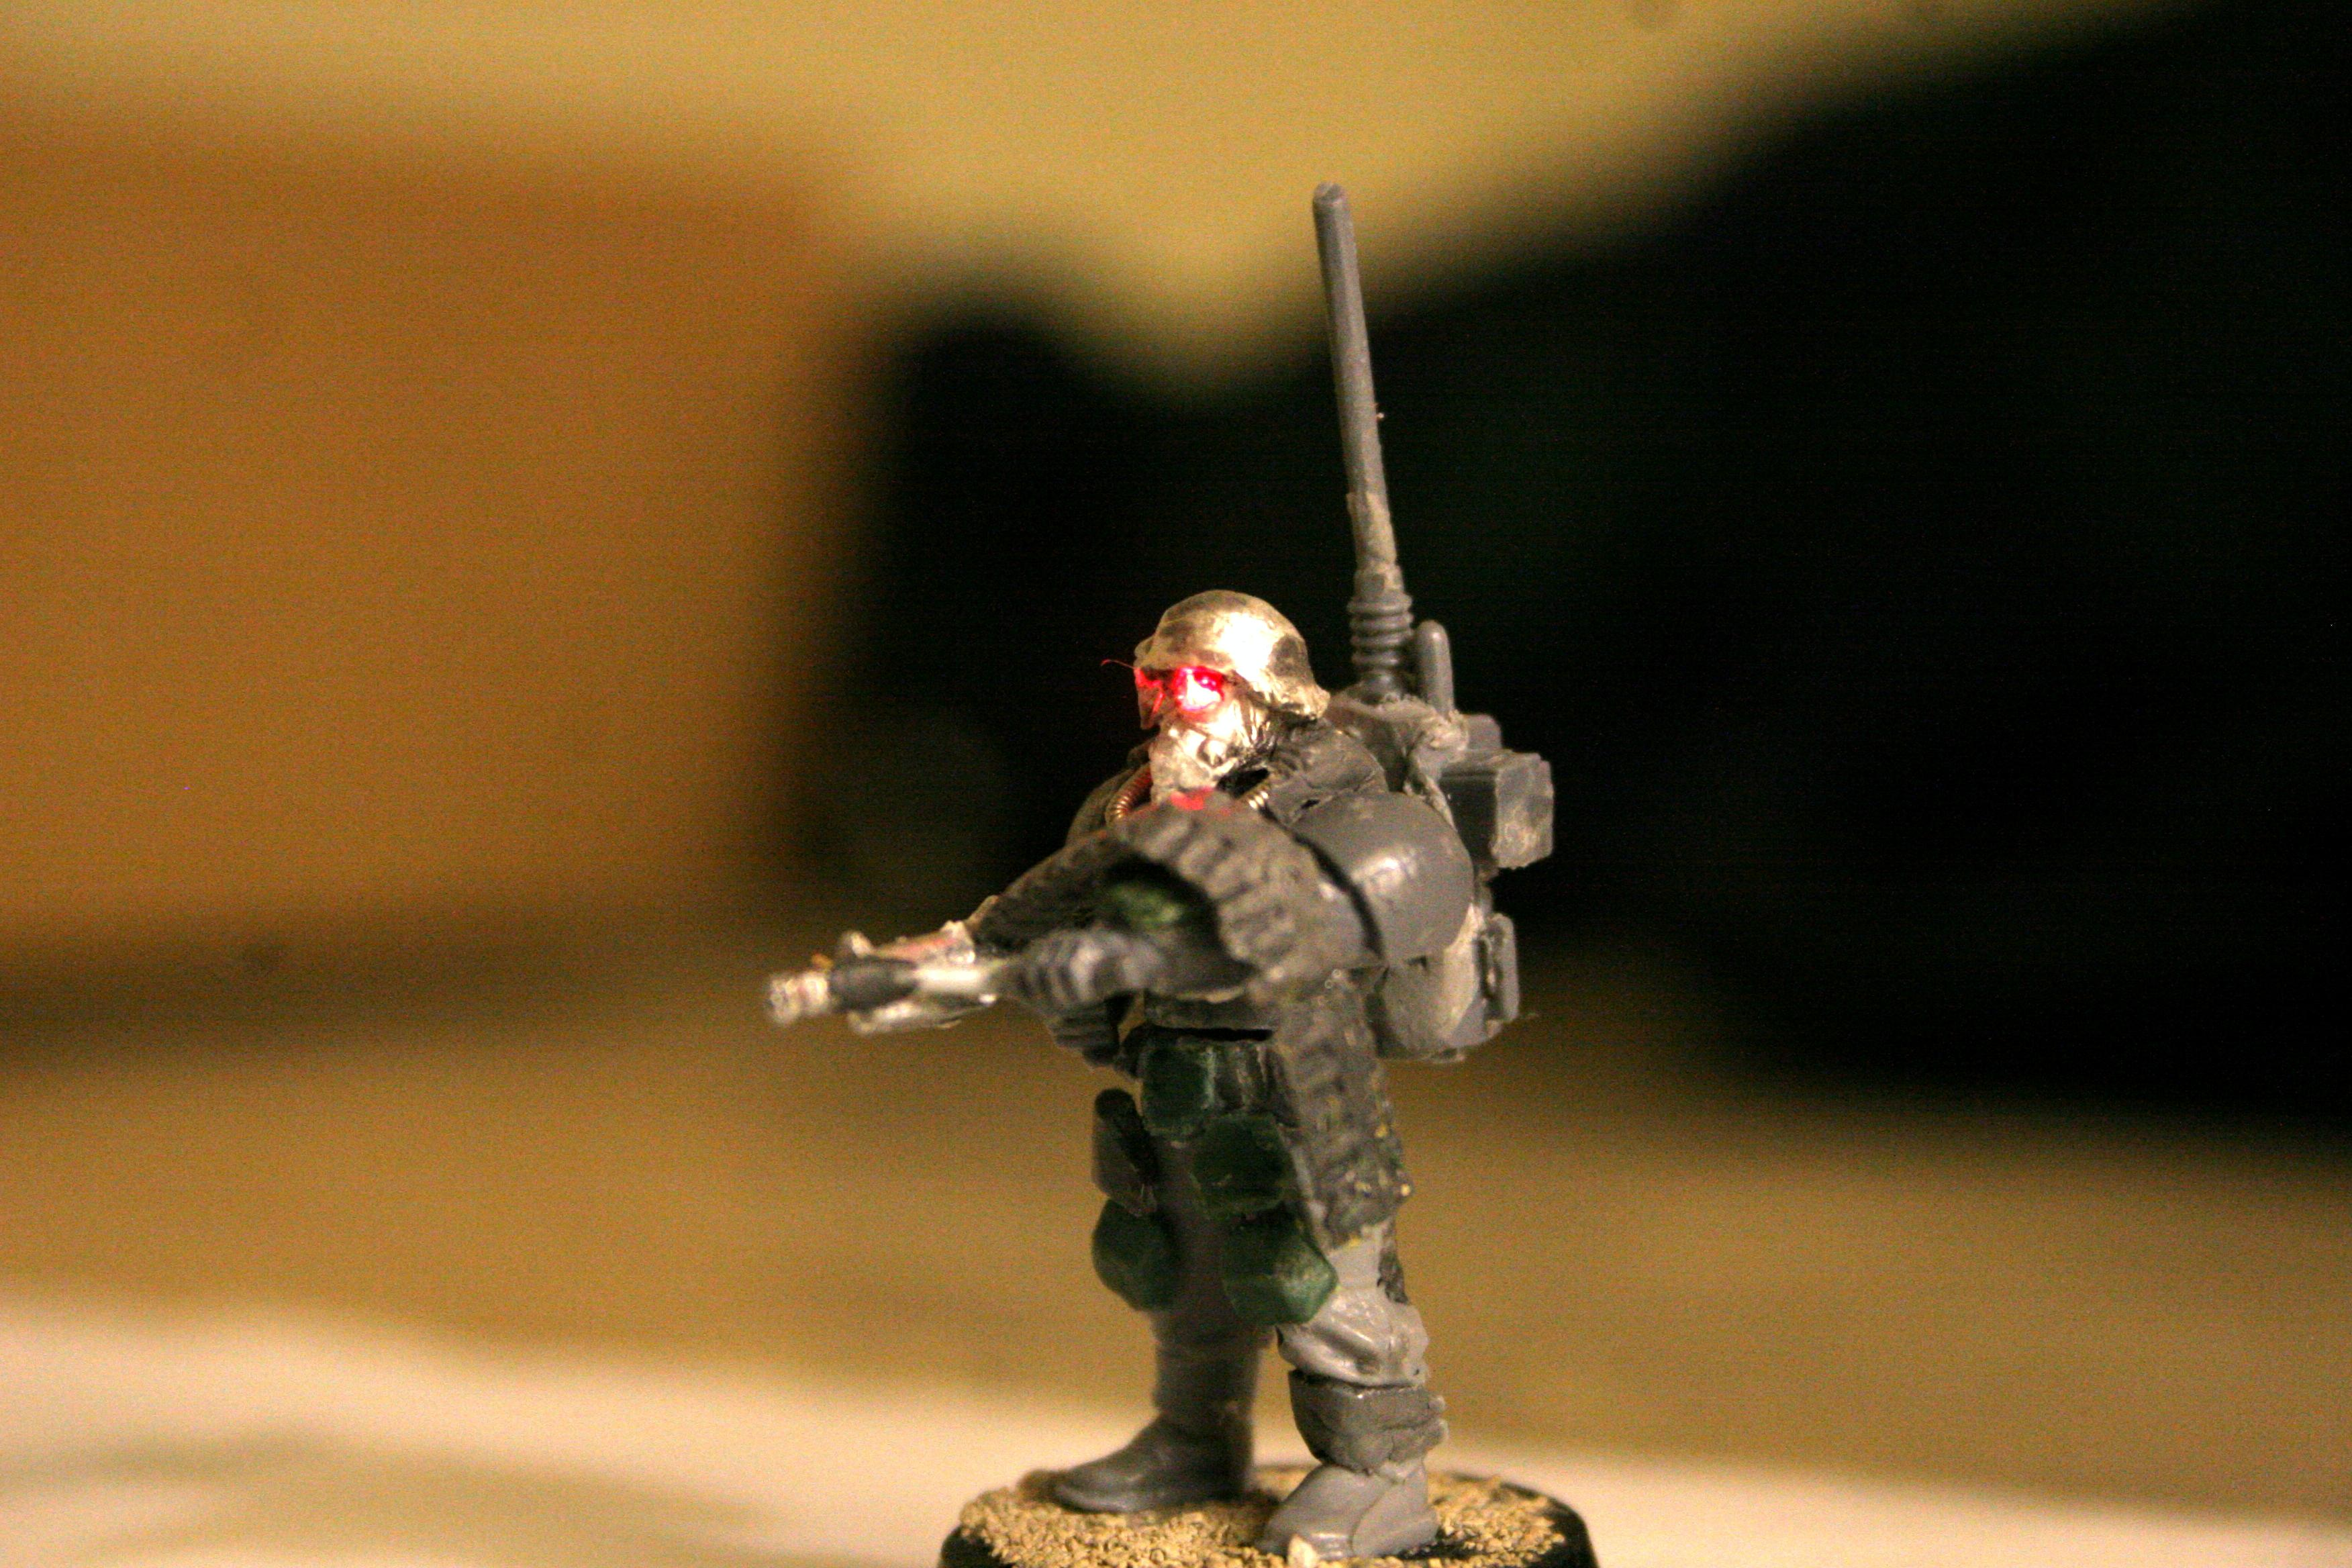 Autogun, Cadians, Imperial Guard, Jin-roh, LED, Lighting, Pig Iron, Storm Troopers, Stormtrooper, Wolf Brigade